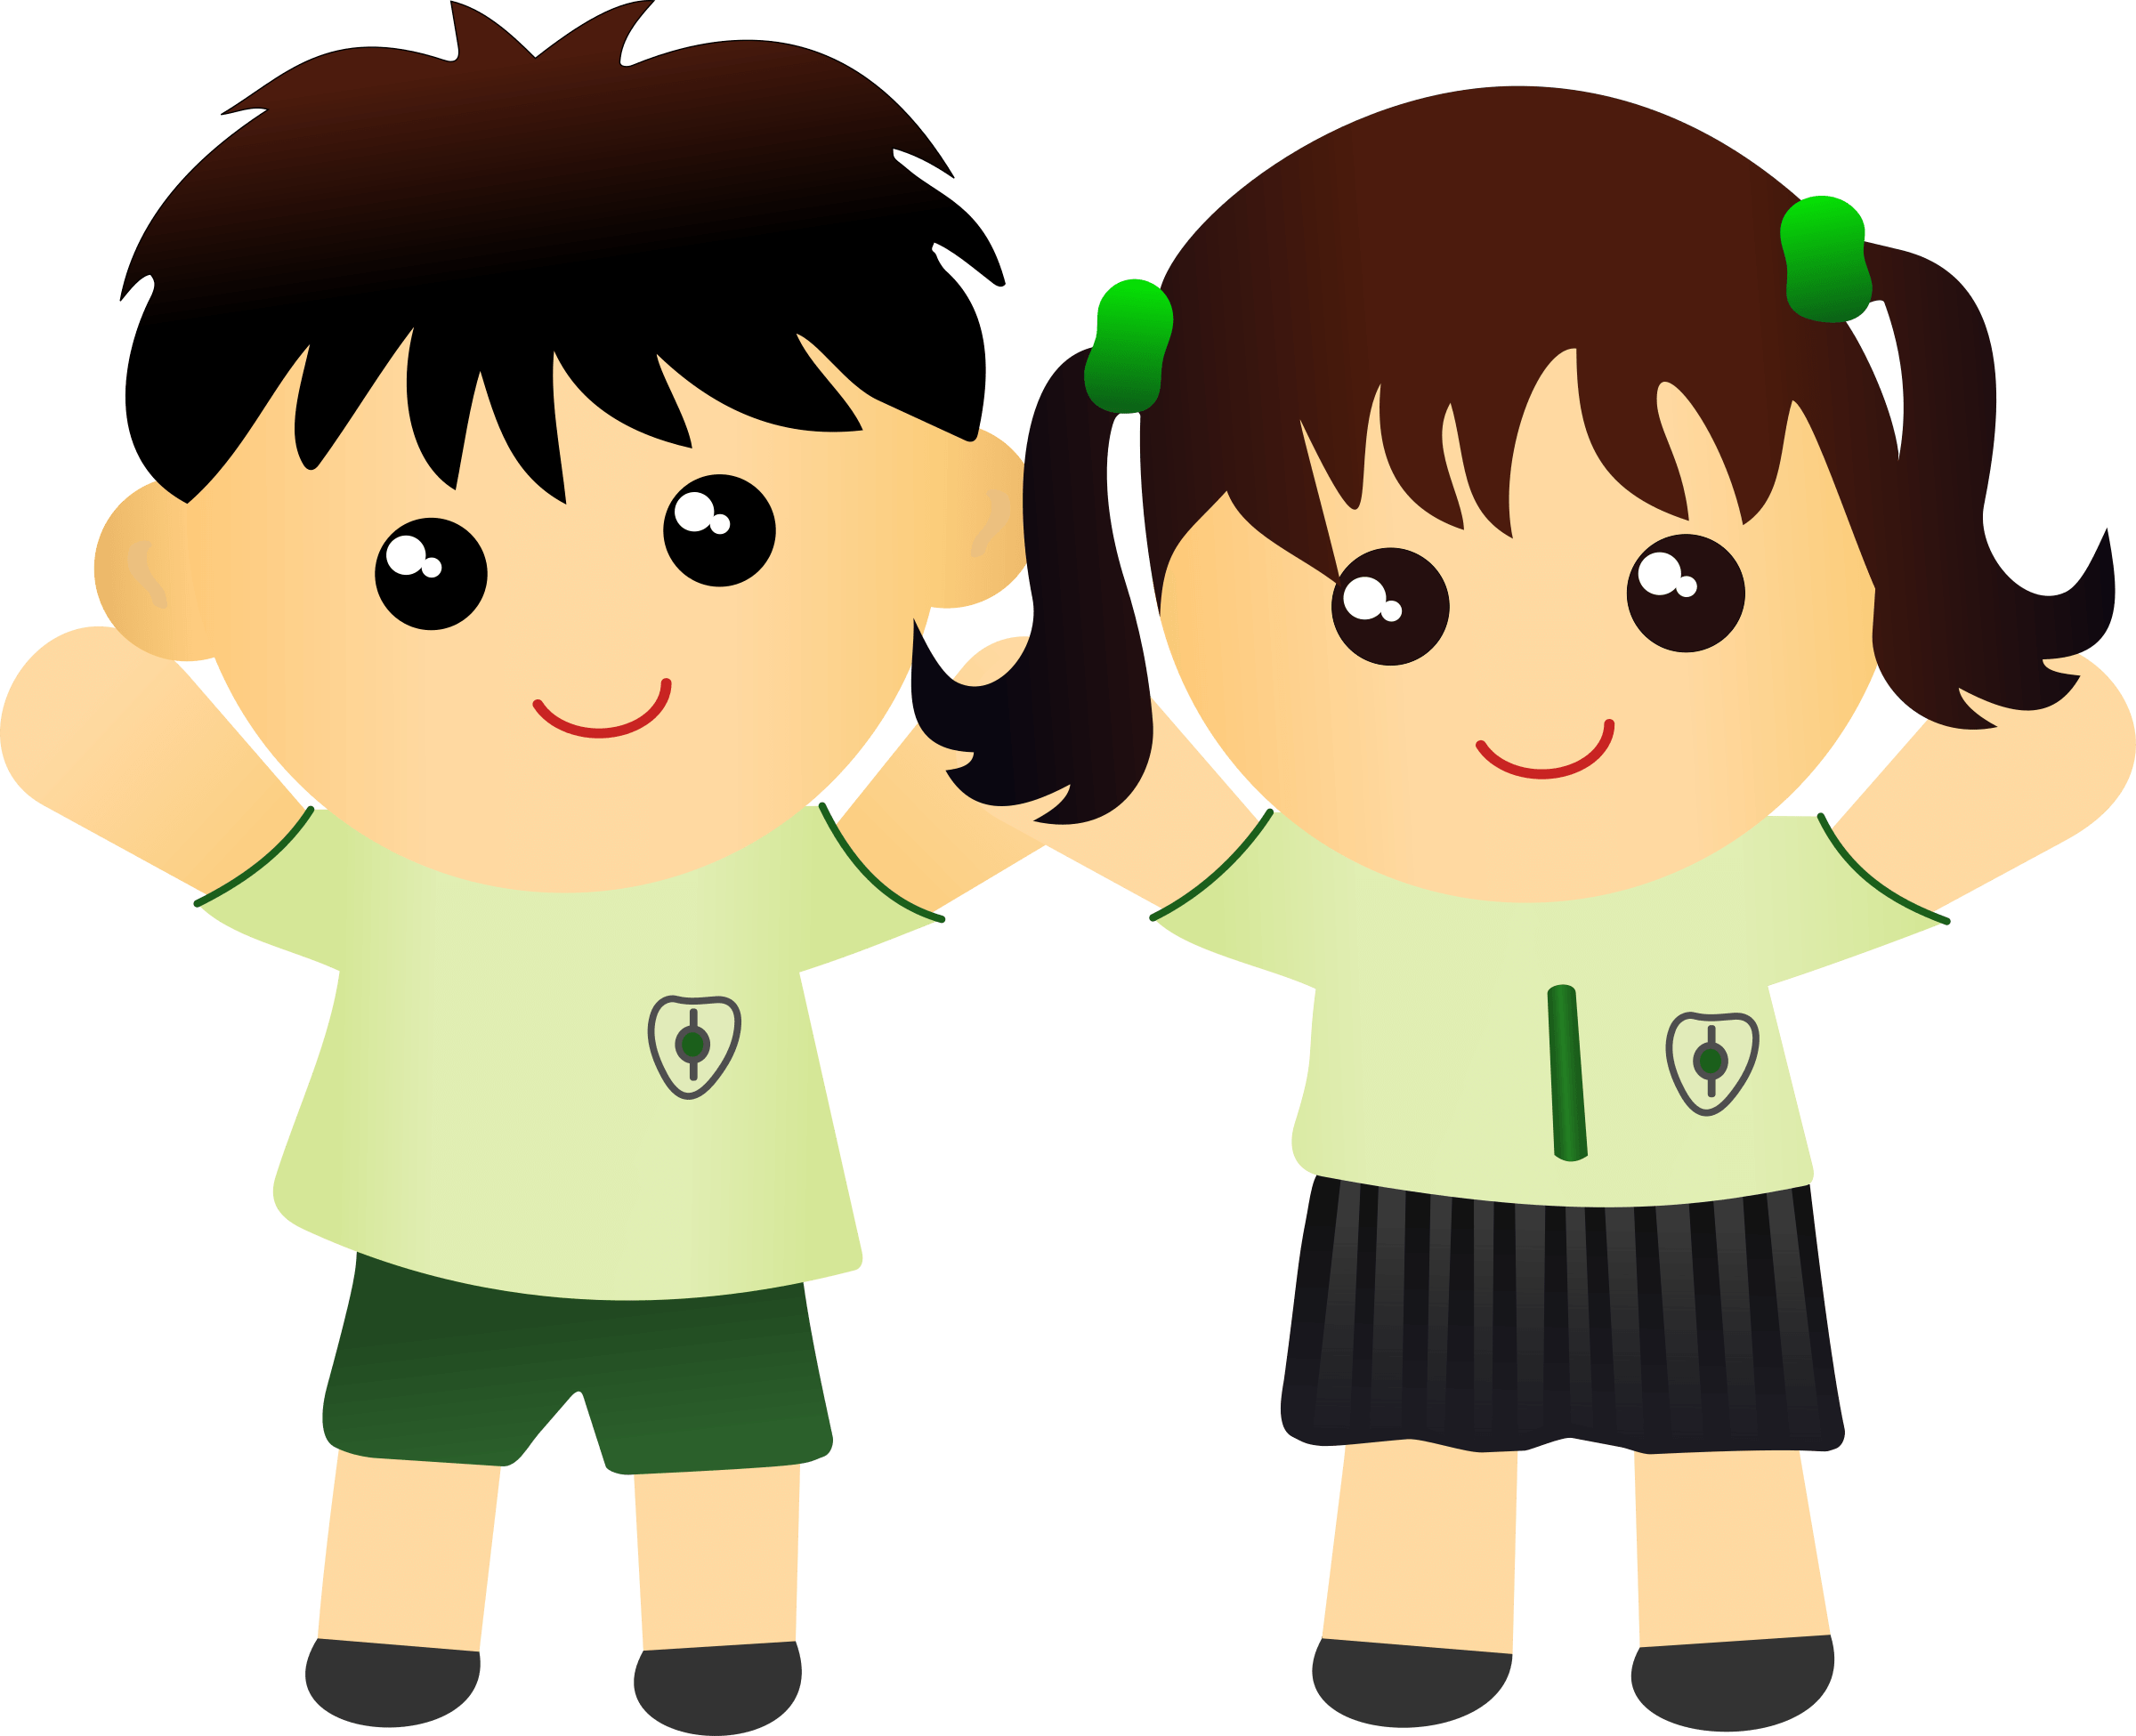 Free Asian Student Cliparts, Download Free Clip Art, Free Clip Art.